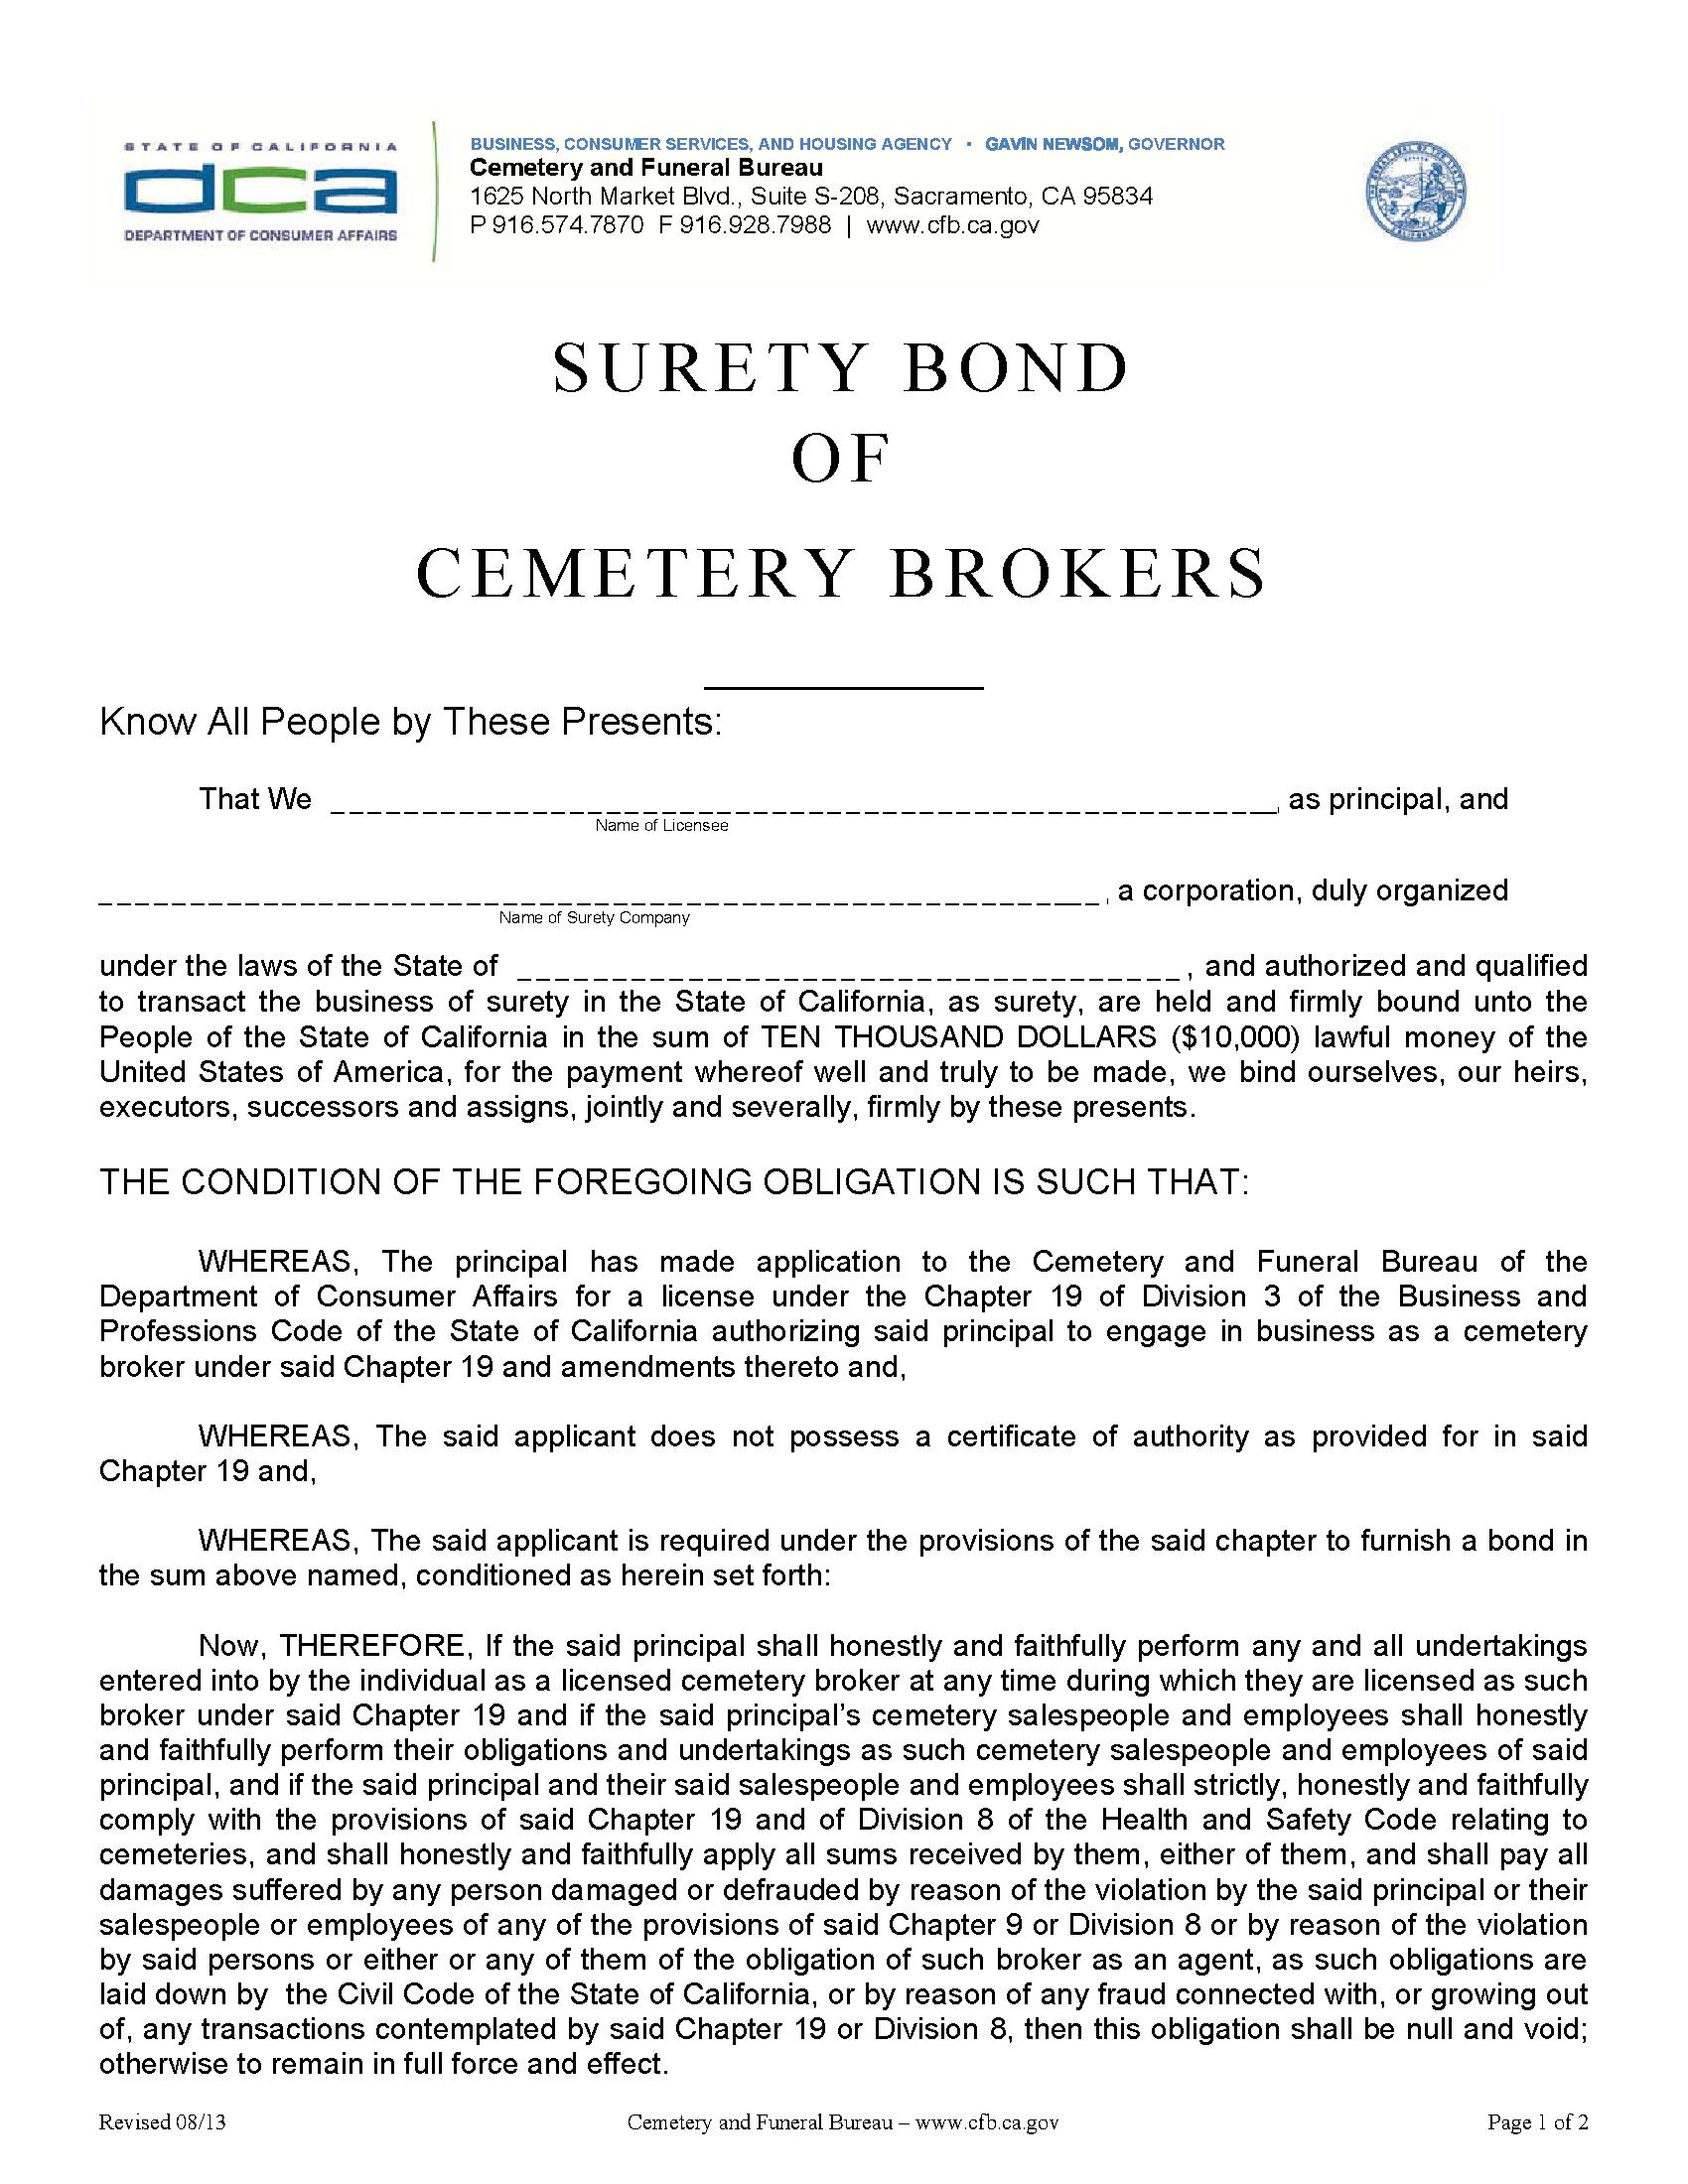 Cemetary and Funeral Bureau Cemetery Brokers 3 YR sample image